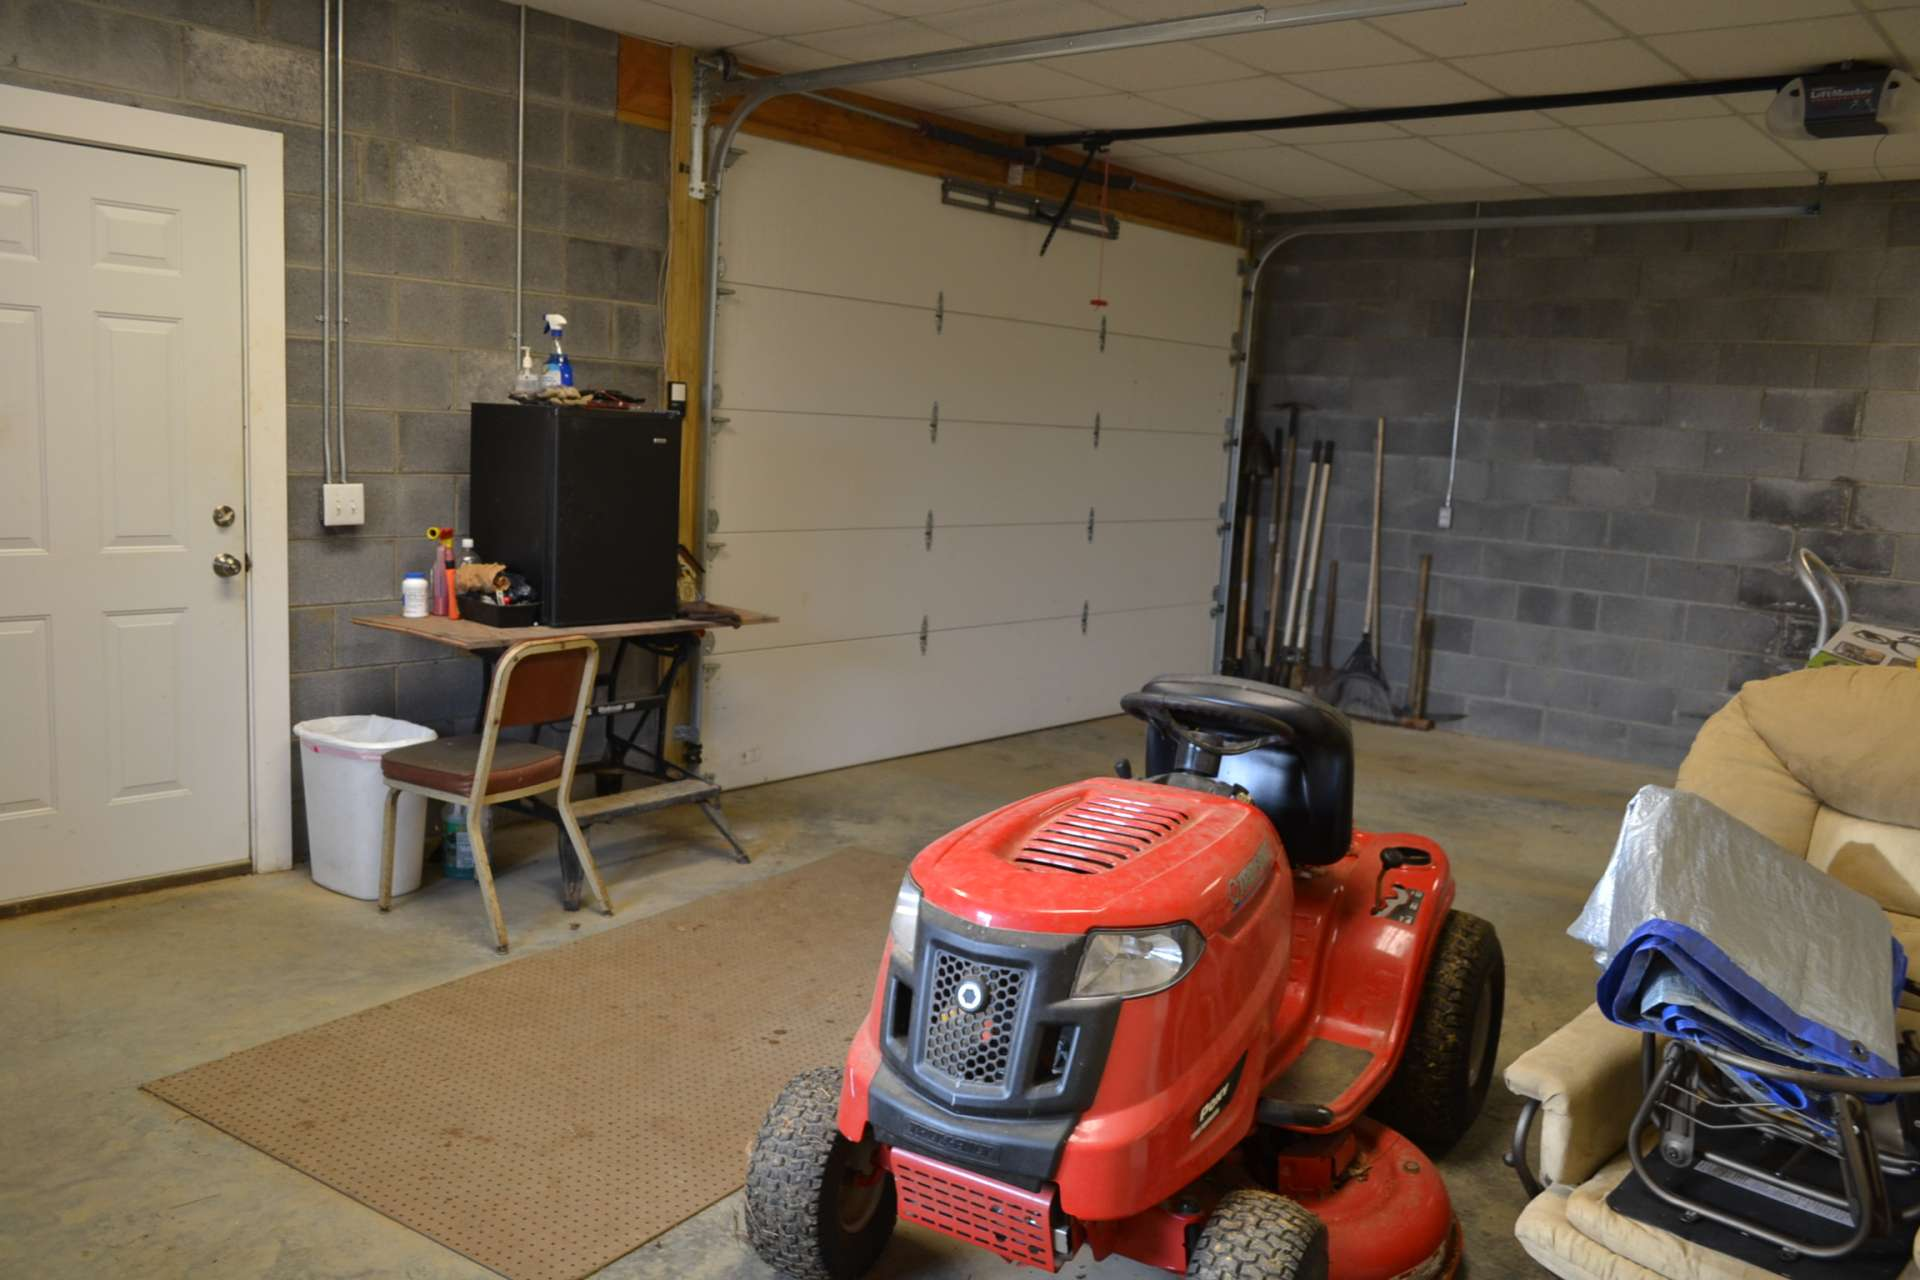 The full walkout lower level offers expansion potential on one side, and a workshop/garage area on the other side.  The garage/workshop area is plenty large enough for your vehicle and your lawn and garden equipment.